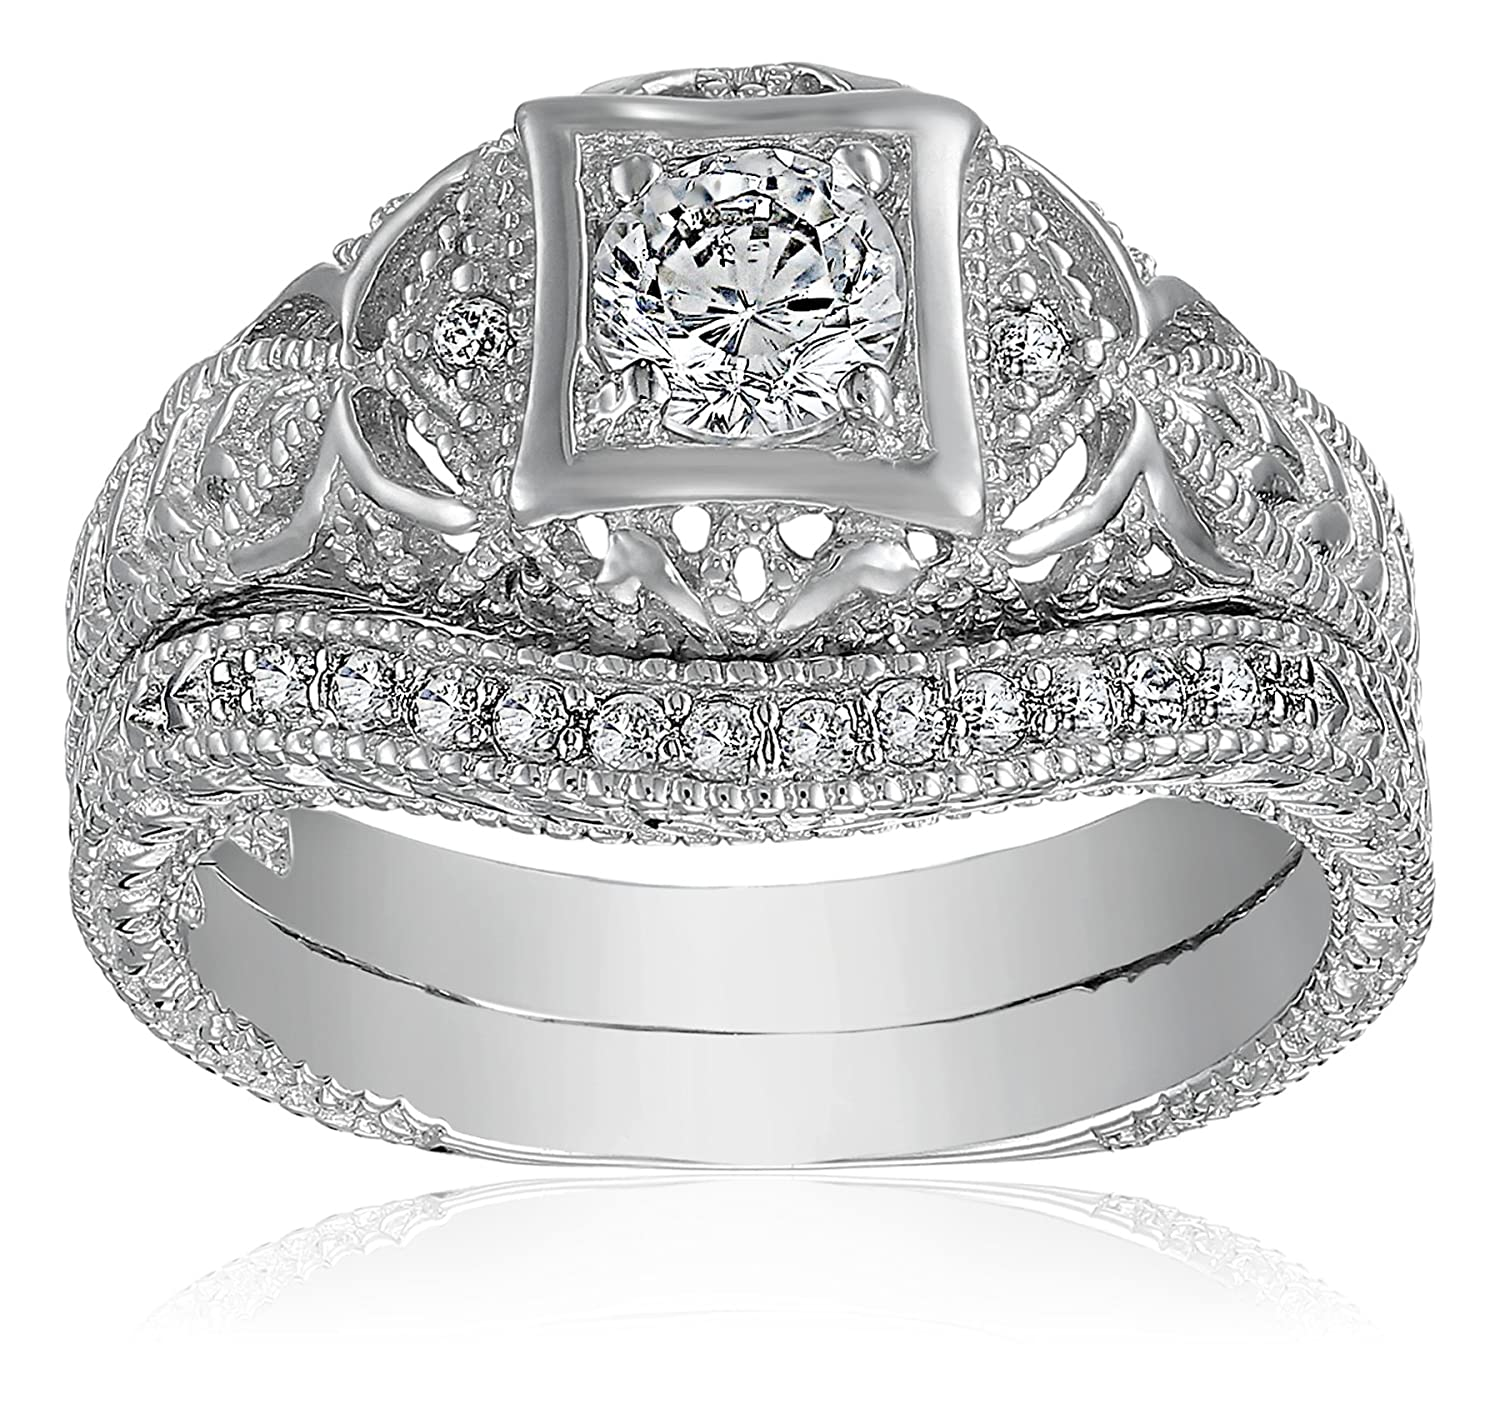 Amazon 43ct Antique Filigree Round Cz Vintage Waved Cubic Zirconia Engagement Wedding Band Ring Set 925 Sterling Silver Jewelry: Antique Filigree Wedding Rings At Reisefeber.org